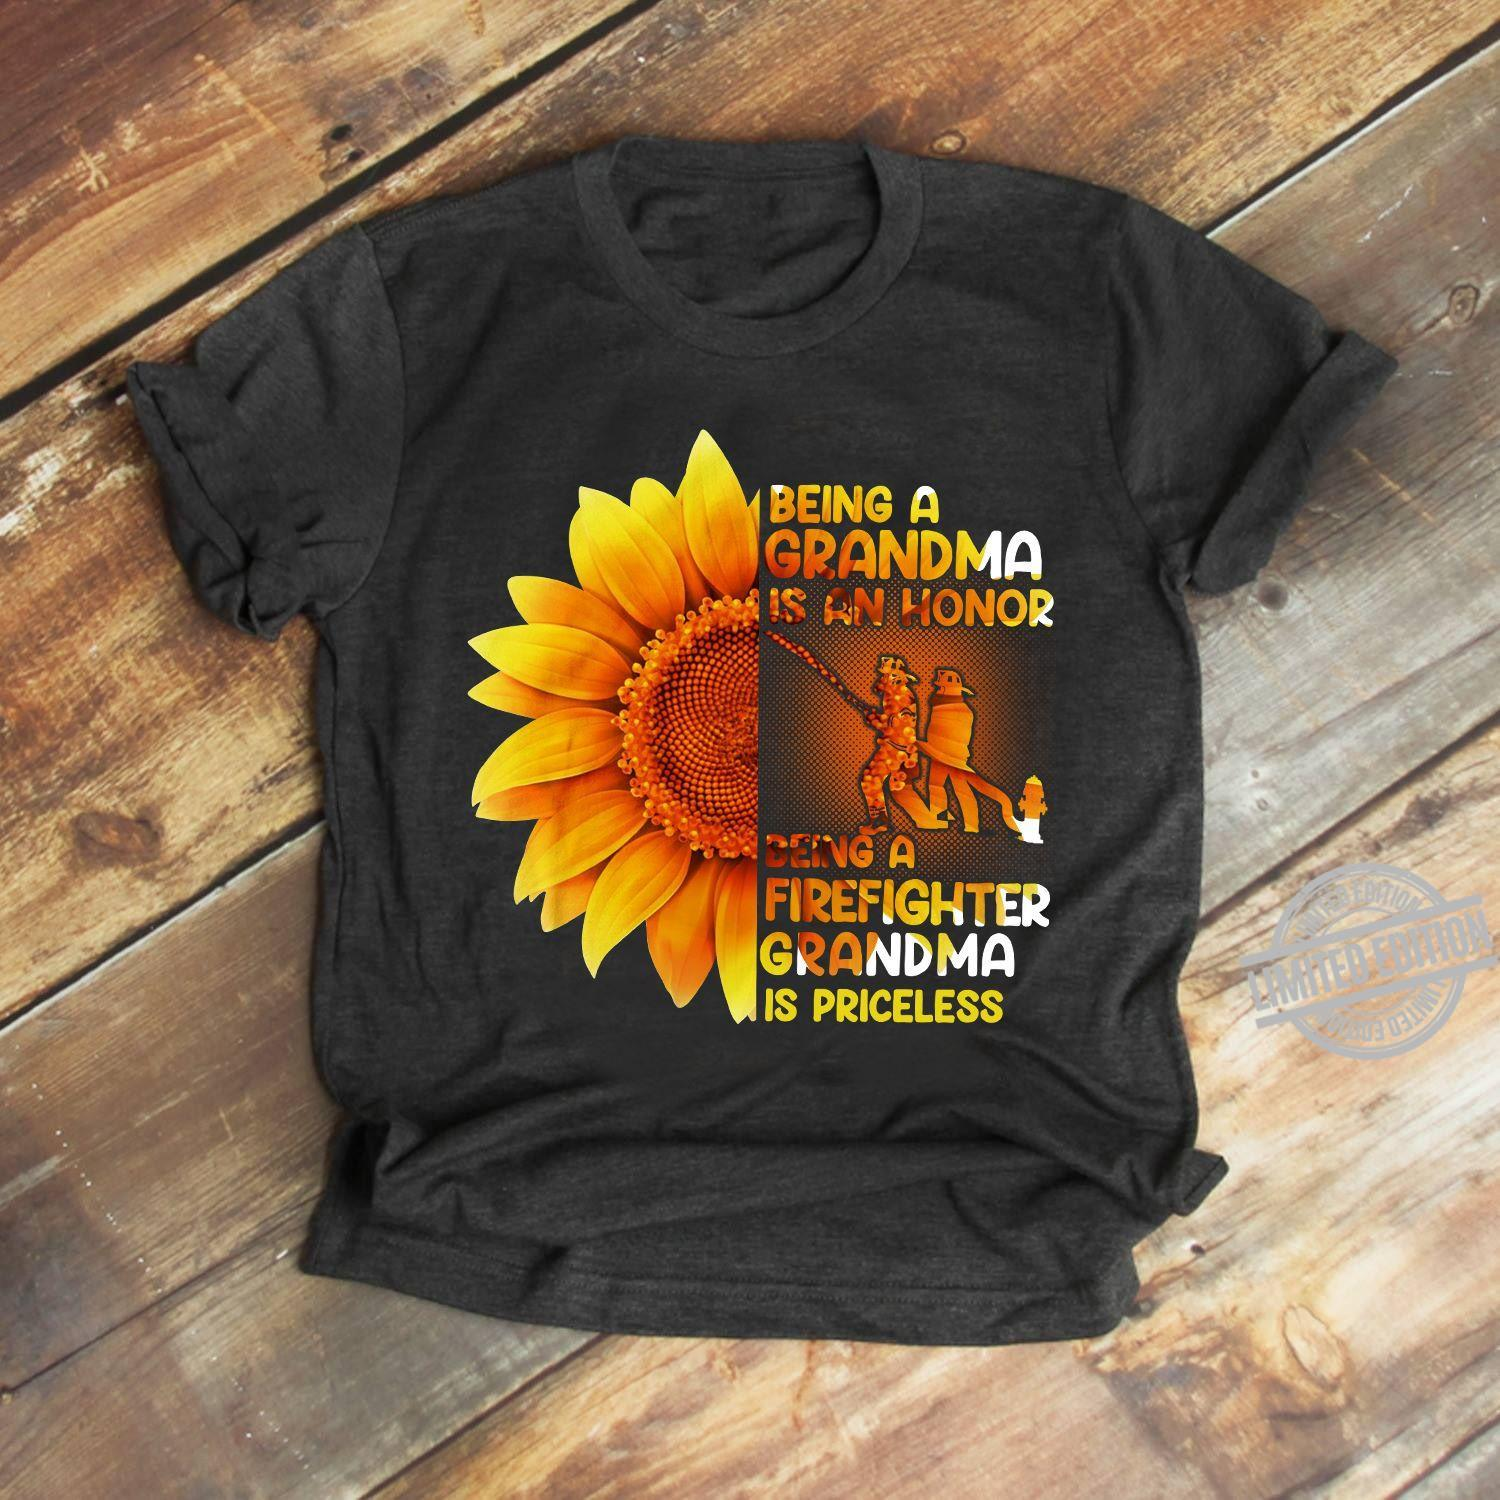 Being A Grandma Is An Honor Deing A Firefighter Grandma Is Priceless Shirt